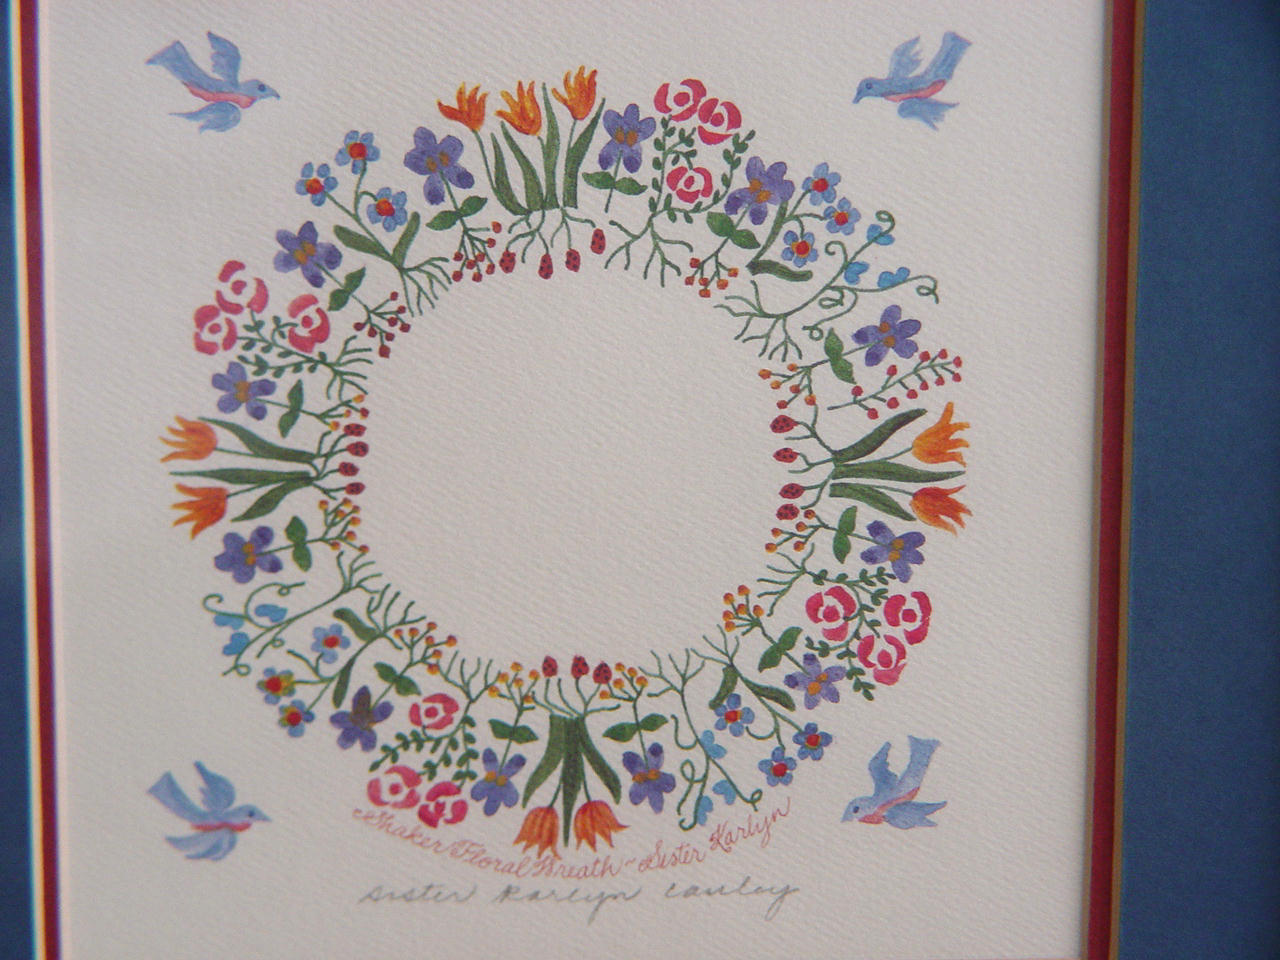 Sr. Karlyn Cauley Signed, Framed, Shaker Calligraphy Wreath Print